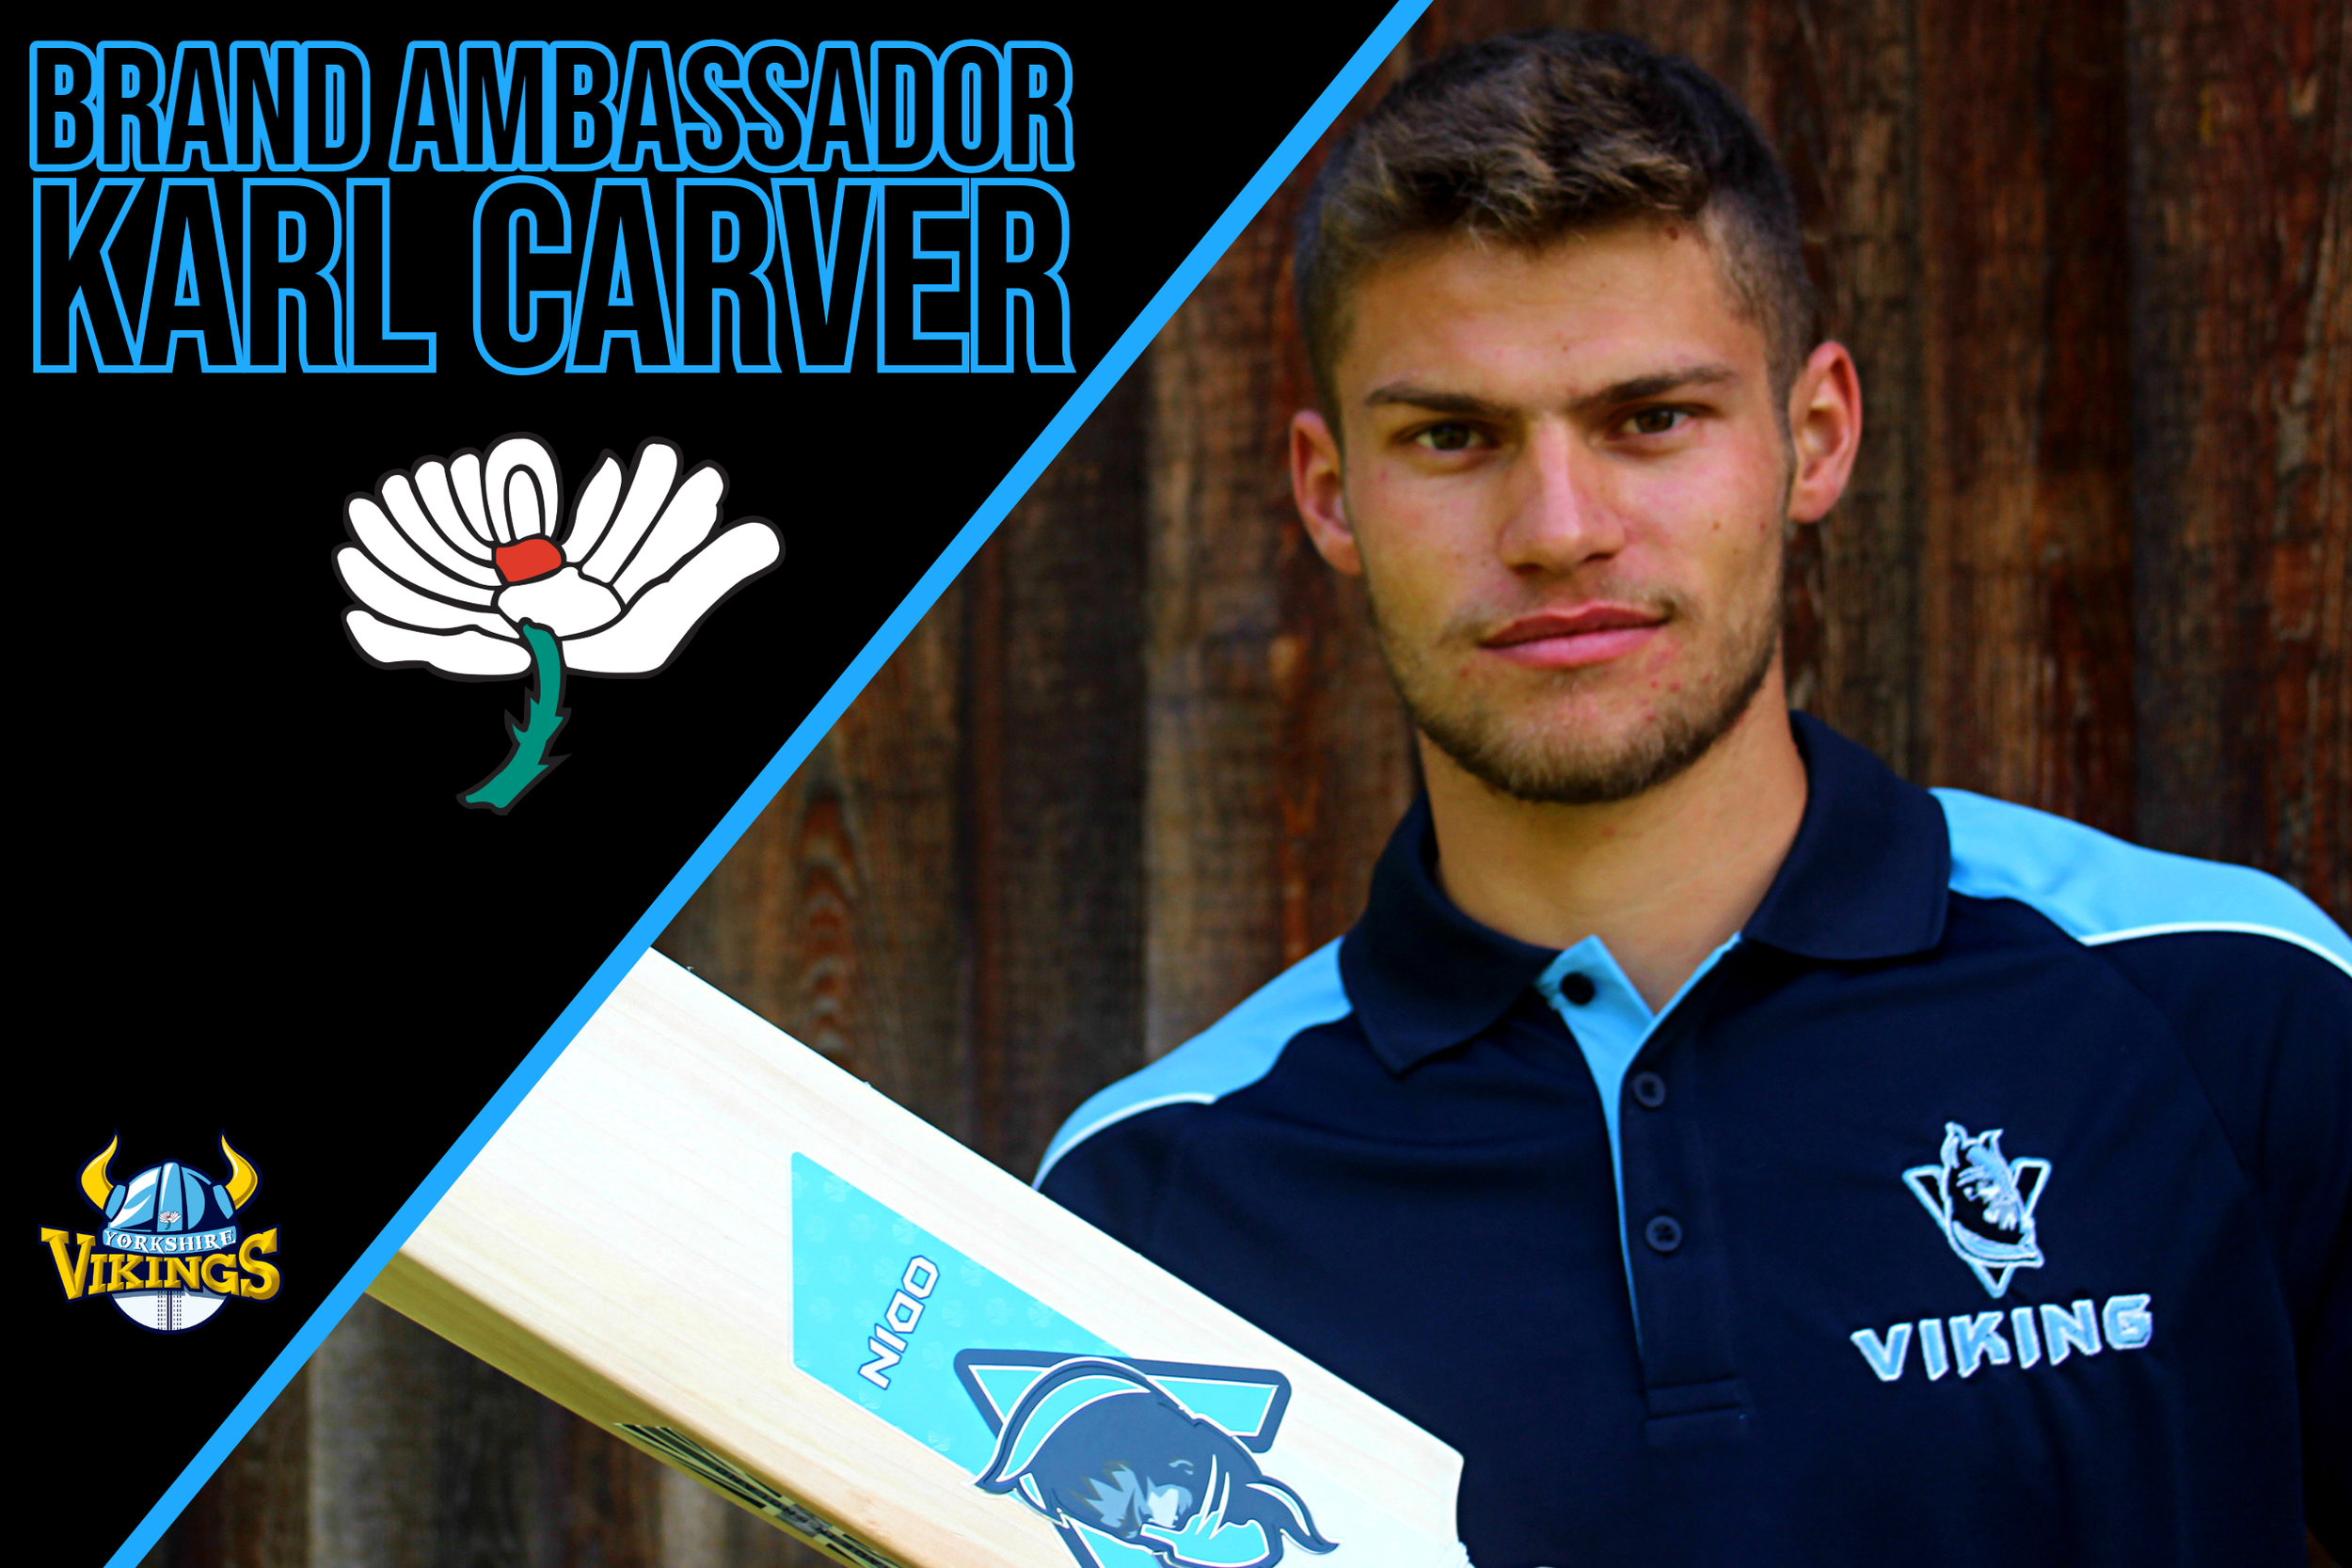 Karl Carver - An English first-class cricketer. A slow left arm orthodox bowler and left handed batsman, Karl plays for Yorkshire County Cricket Club.Karl will be using the Odin and Hel-Fyr ranges for the 2019 season.You can follow Karl on twitter.com/KarlCarver_29